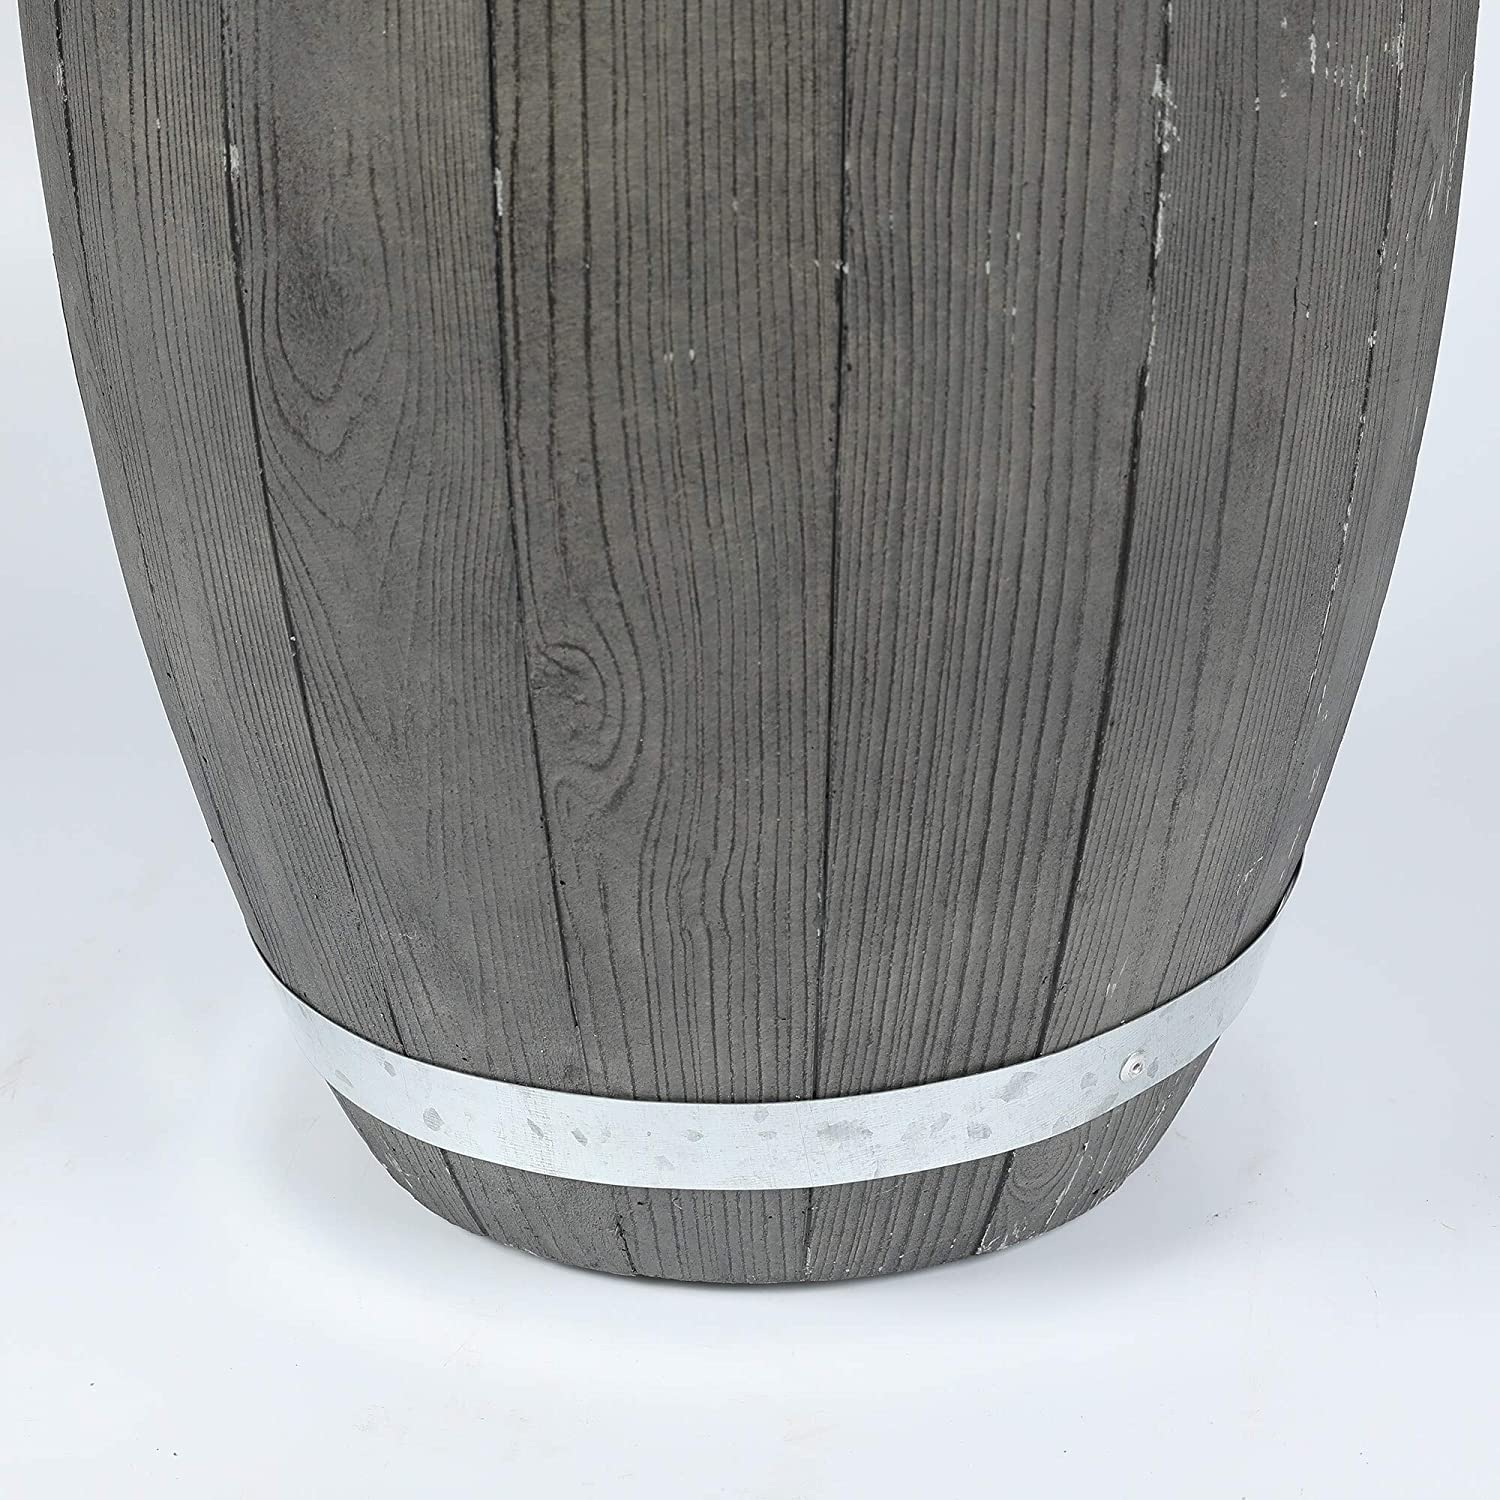 13in Dia Mgo Plank Planter Brown Grey Rustic Round